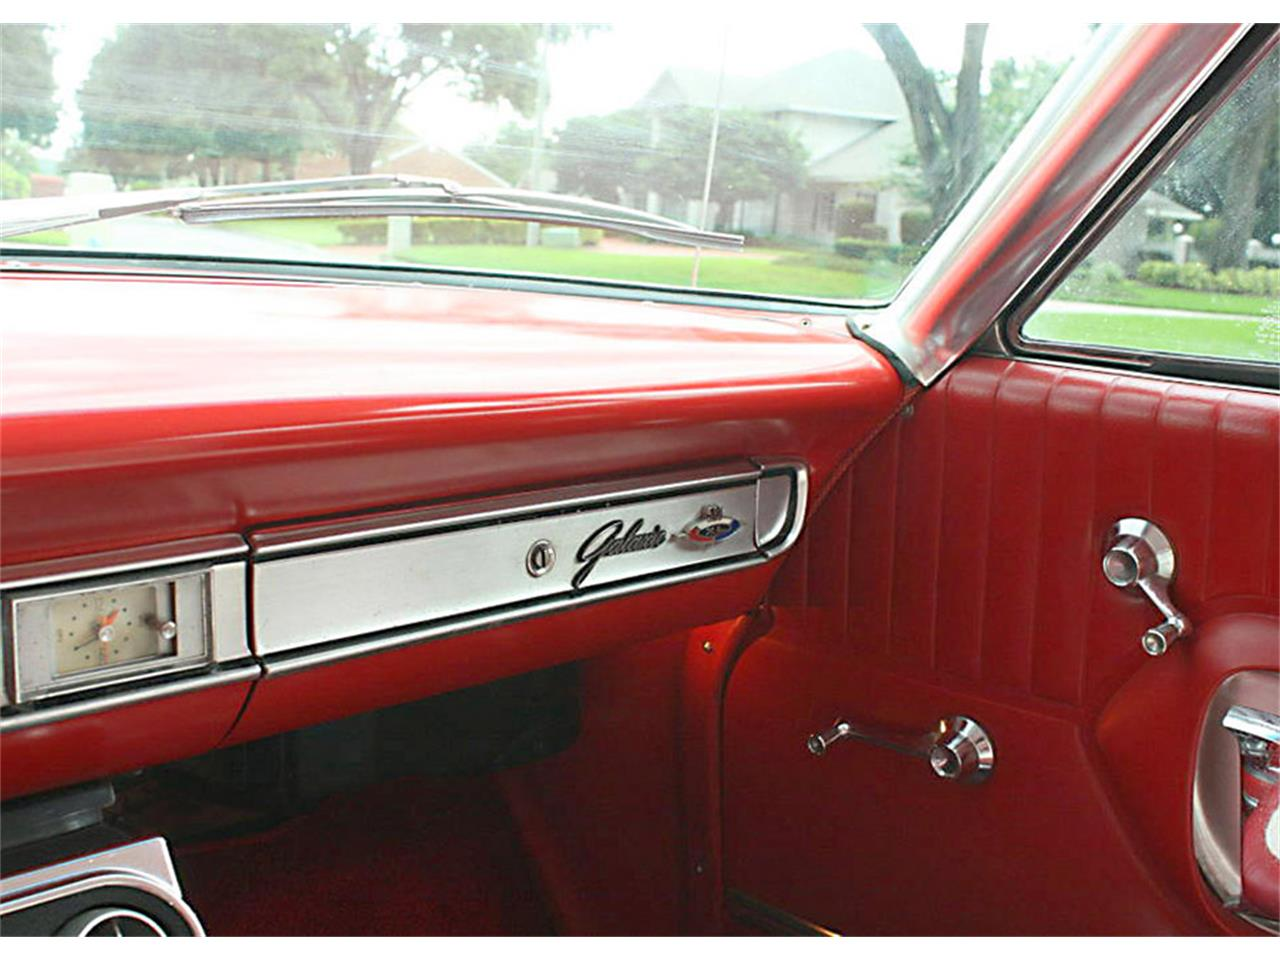 Large Picture of Classic 1964 Ford Galaxie 500 located in Florida - $27,500.00 - NOH3